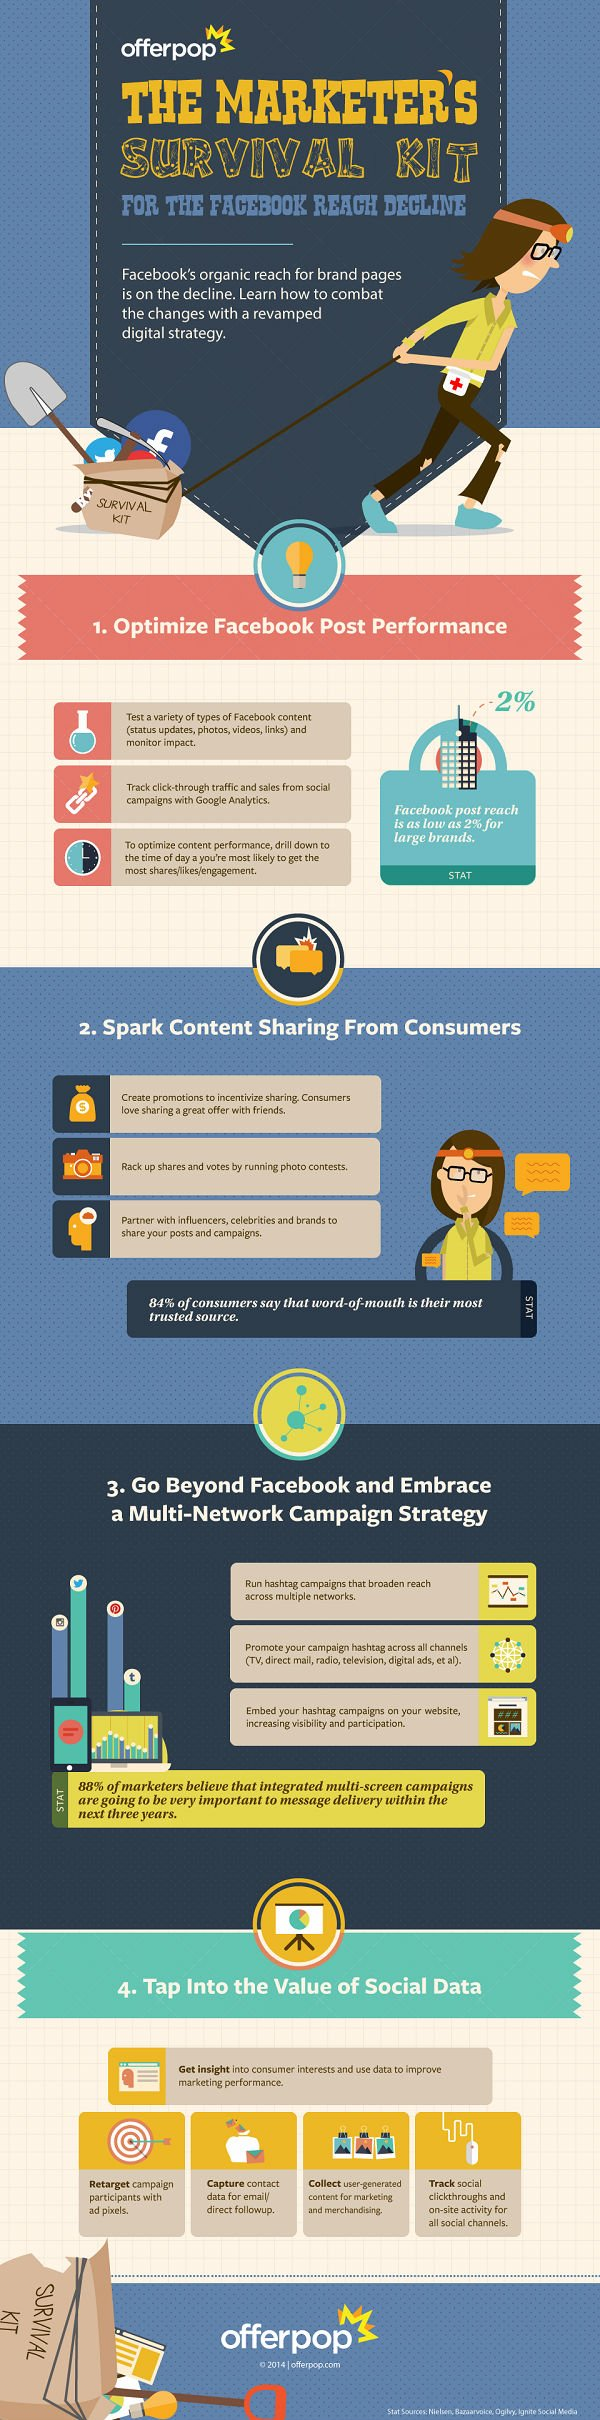 Infographic Navigating Facebook and Declining Organic Reach